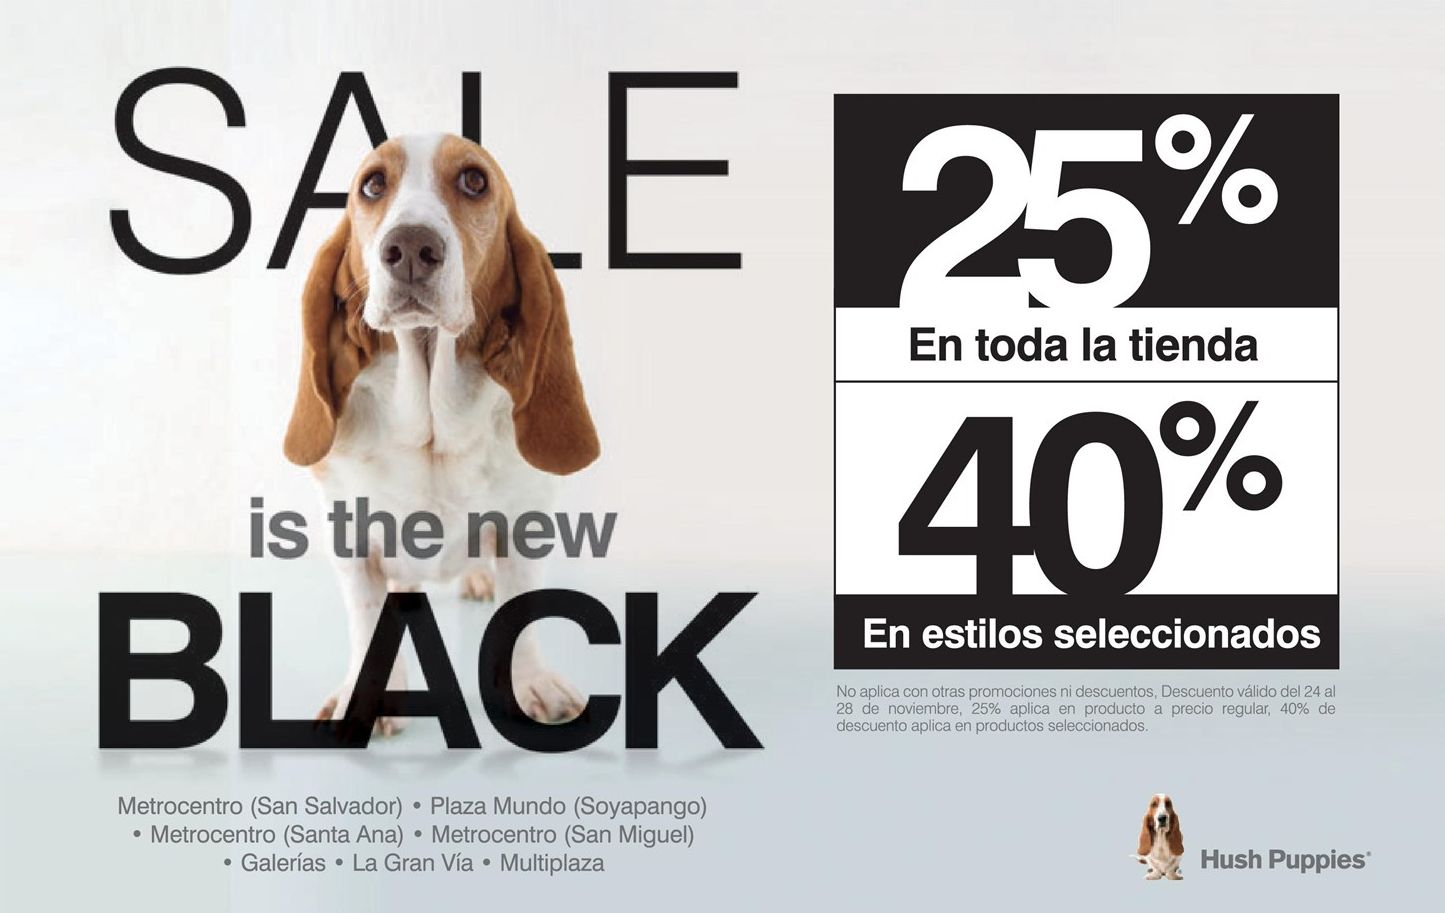 toda-la-tienda-hush-puppies-black-friday-con-25-off-y-hasta-40-off